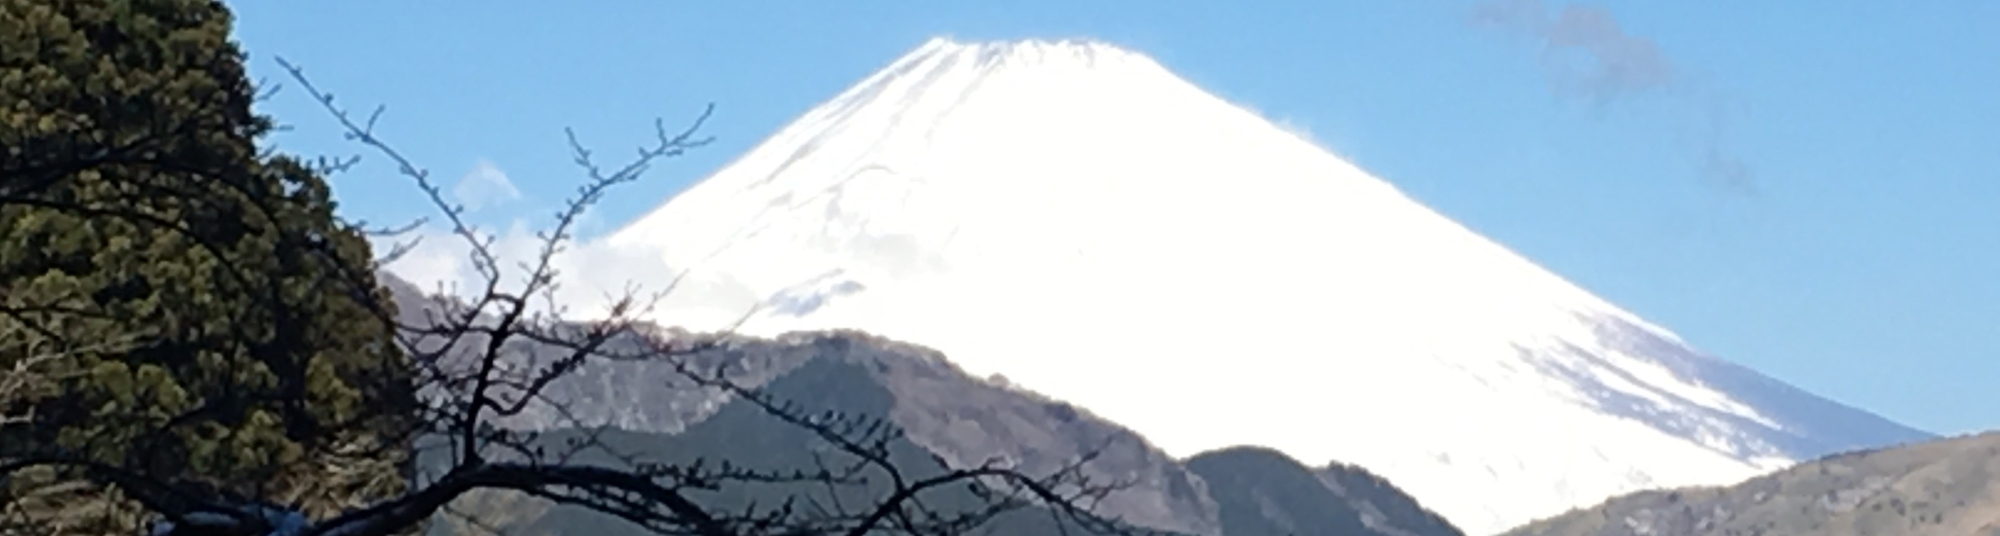 Fuji from Cedar Avenue Lake Ashinoko